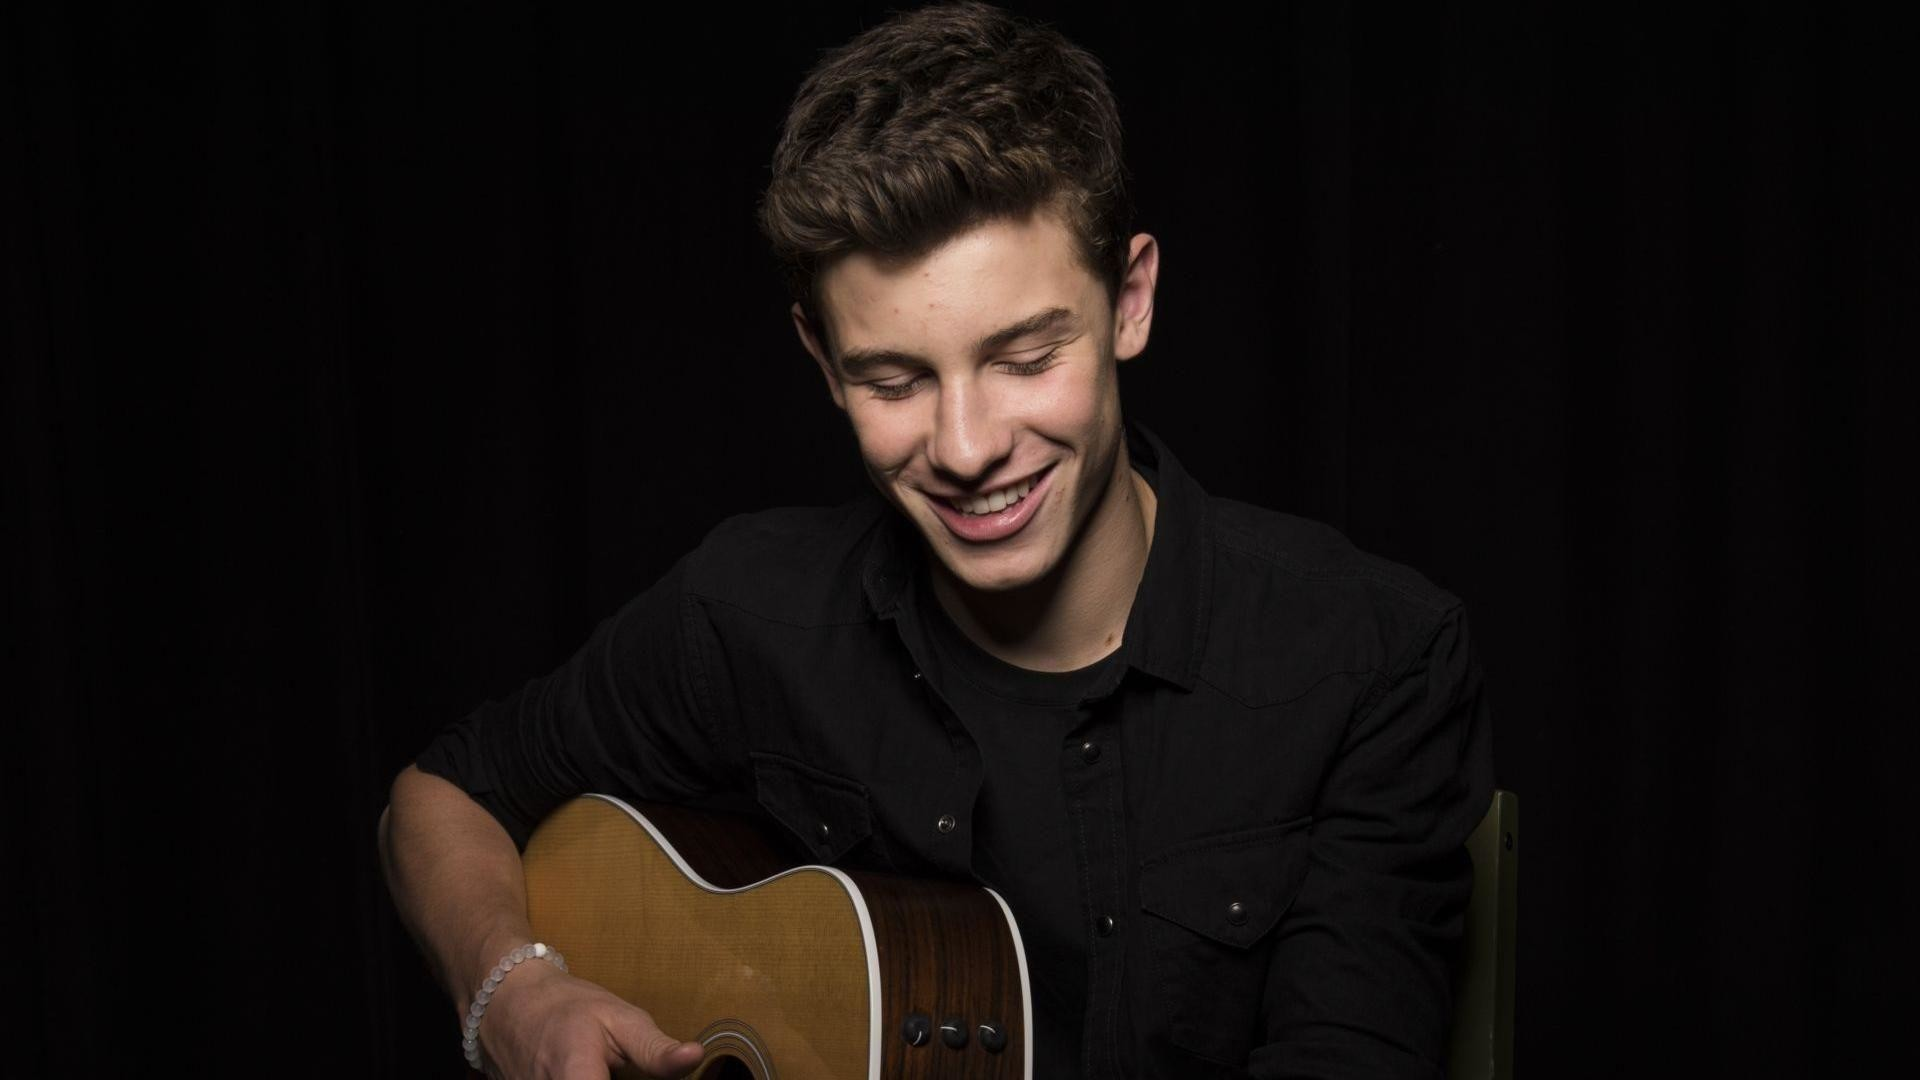 Shawn Mendes Wallpapers (81+ Images